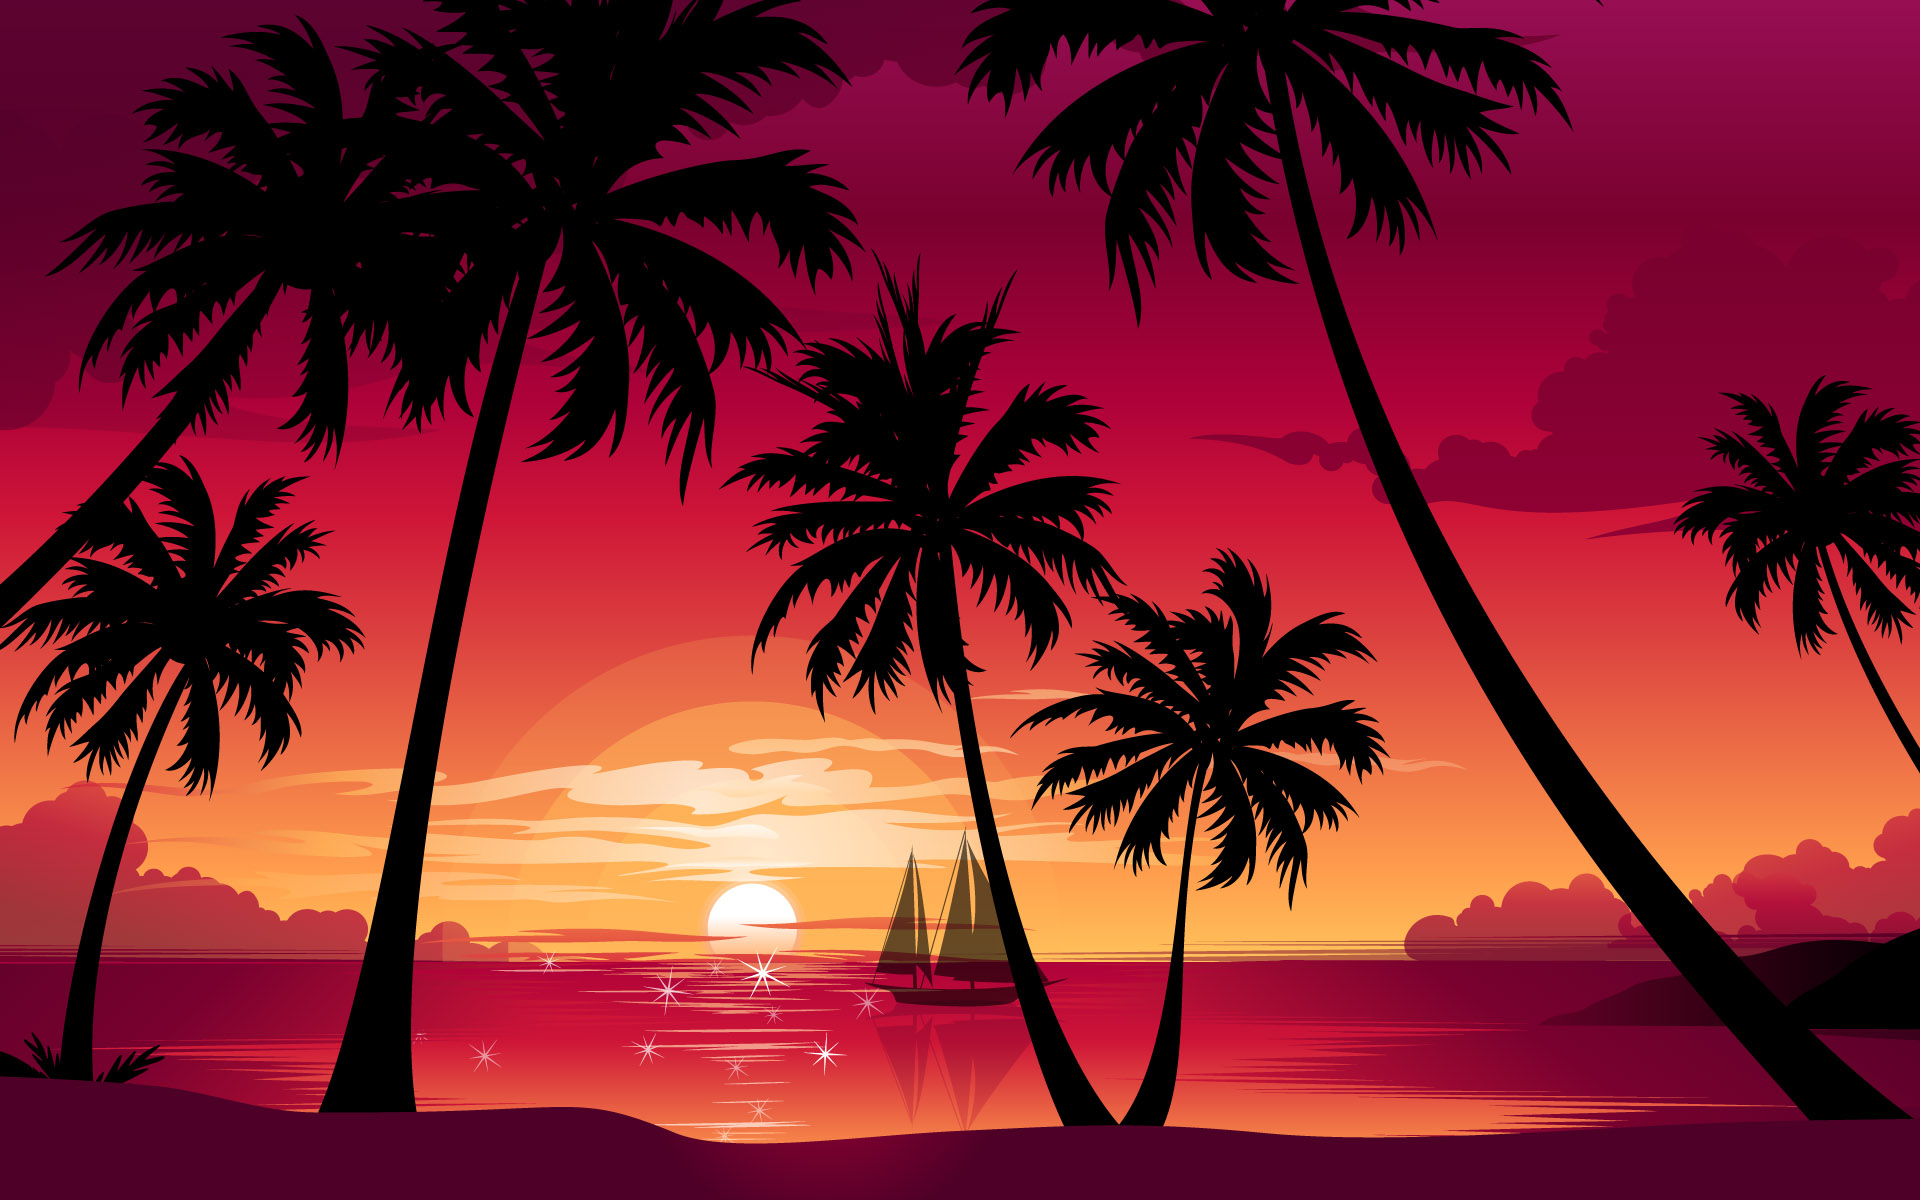 sunset hd wallpapers palm trees sunset wallpapers palm trees sunset 1920x1200